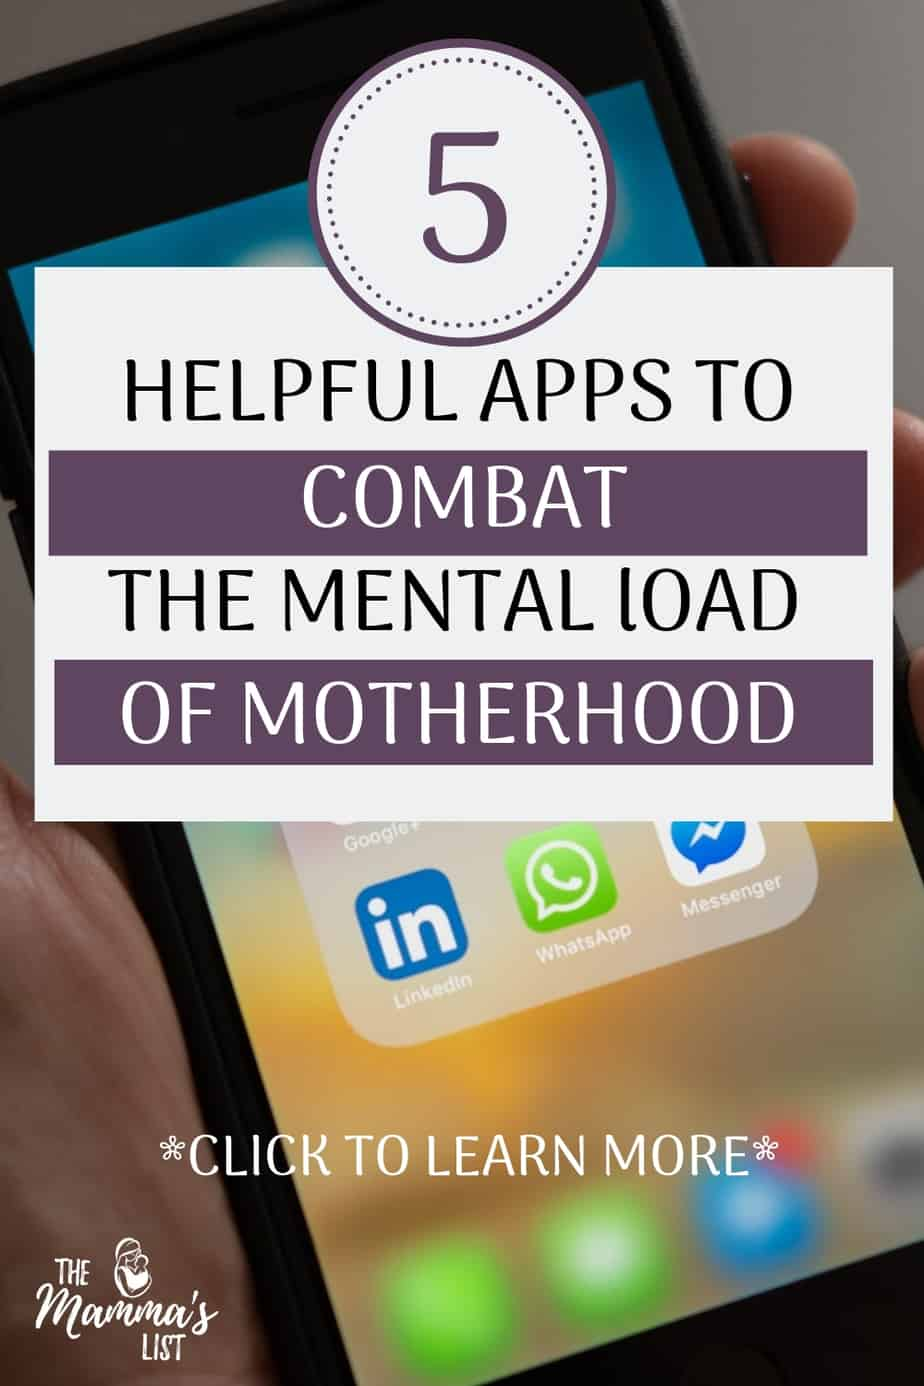 The mental load of motherhood is real. It's that constant hampster wheel in your head of all the things you need to do for the day - doctor's appointments, snack for daycare - you name it. And it can really weigh you down. Here are five crazy helpful apps to help combat the mental load of motherhood, so you're not doing it all yourself.